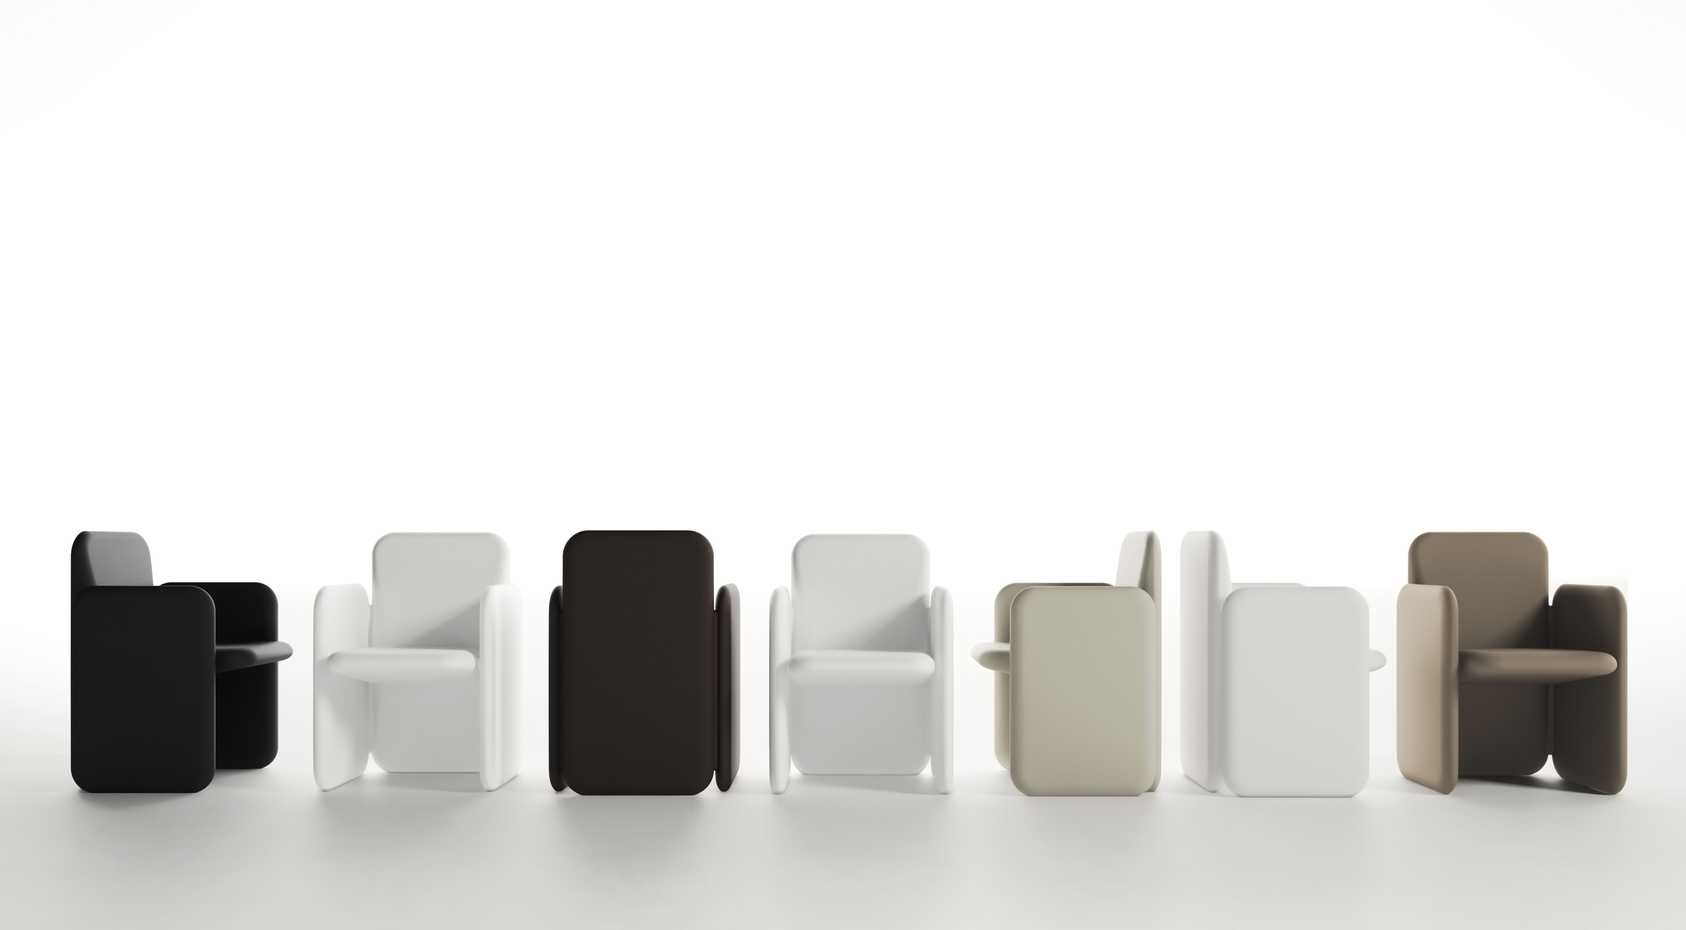 Big Armchair by Gandia Blasco product image 1